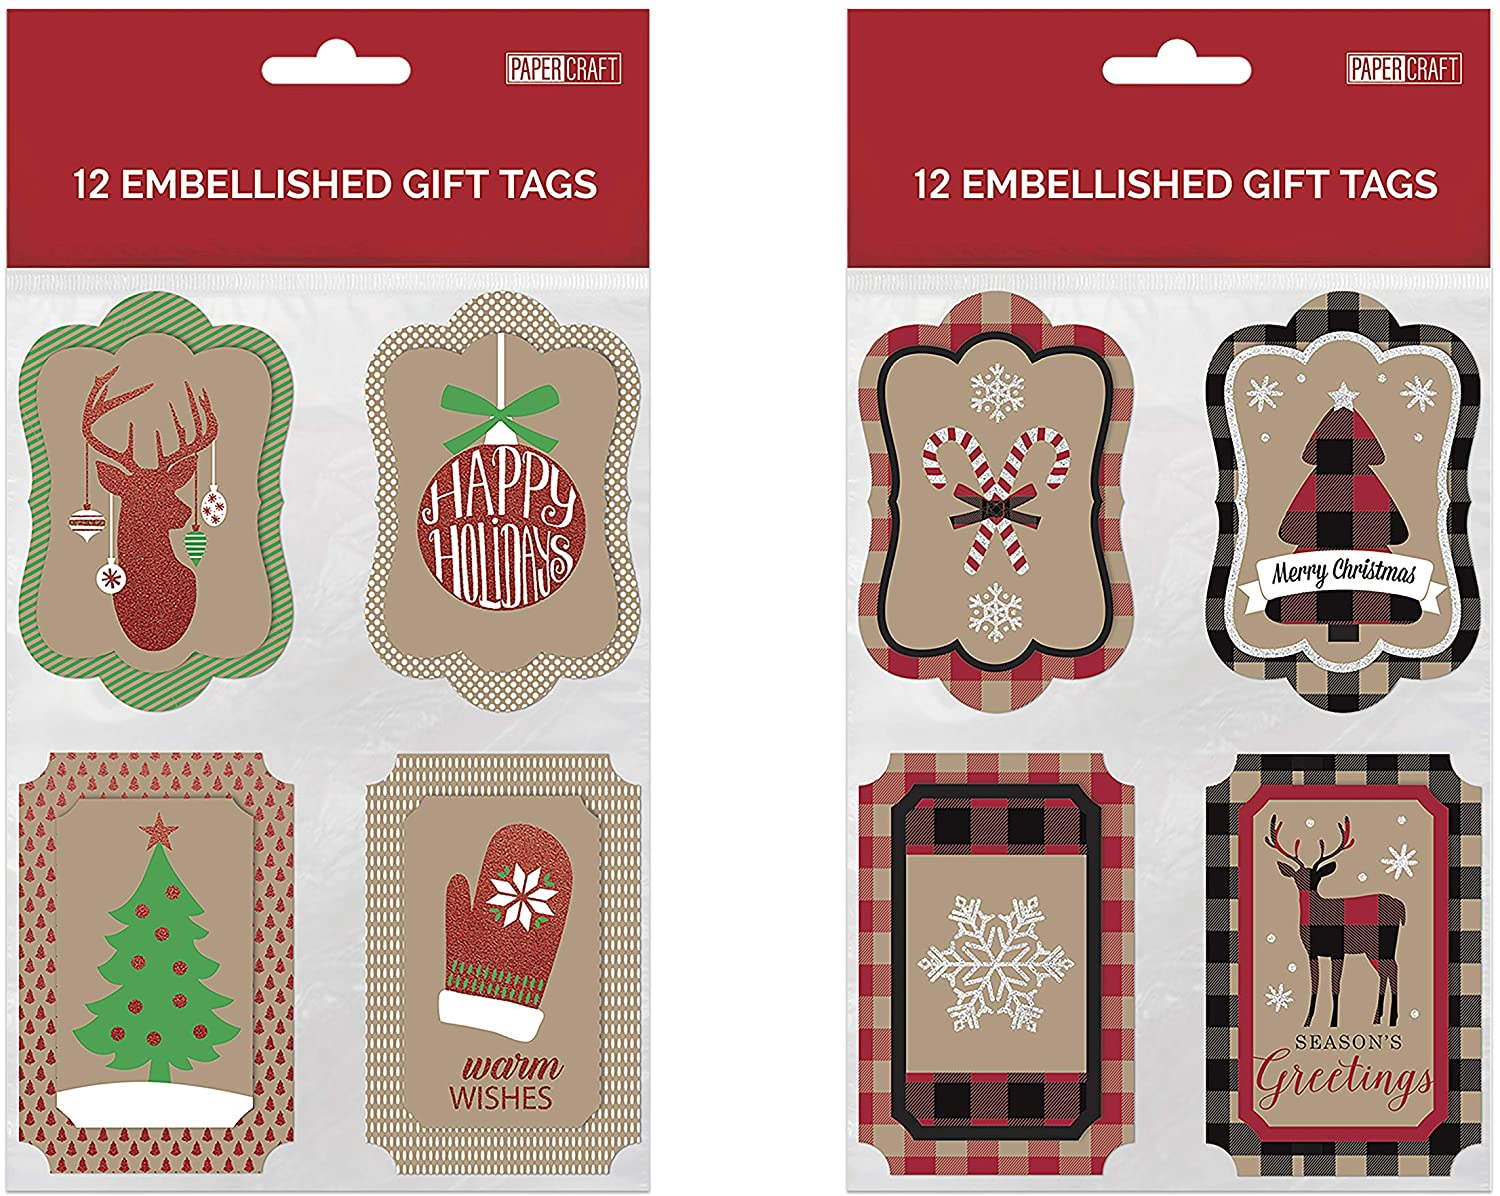 B-THERE Bundle of 24 Die-Cut Kraft Christmas Gifting Tags, Holiday Gift Tags Gifting Supplies